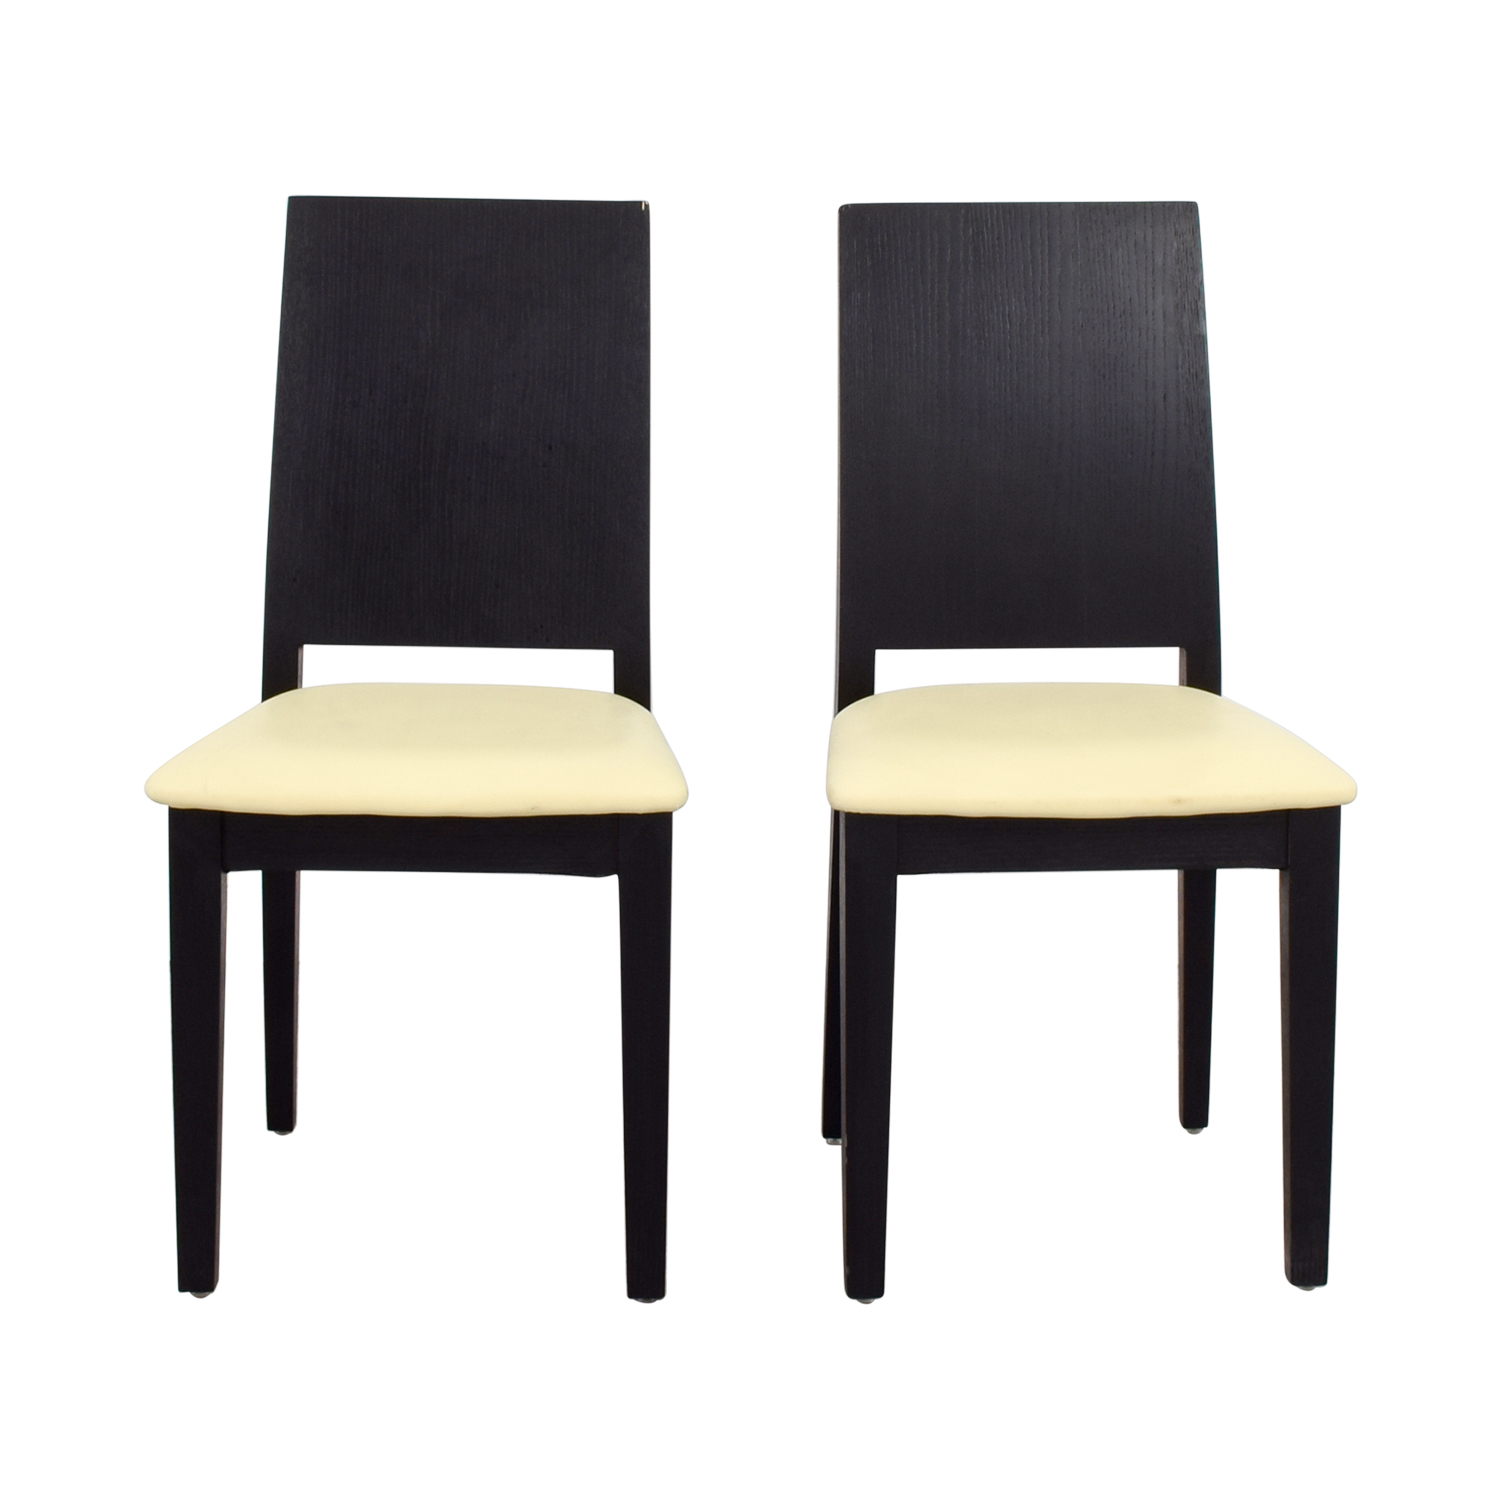 Black Frame with White Seat Dining Chairs nj